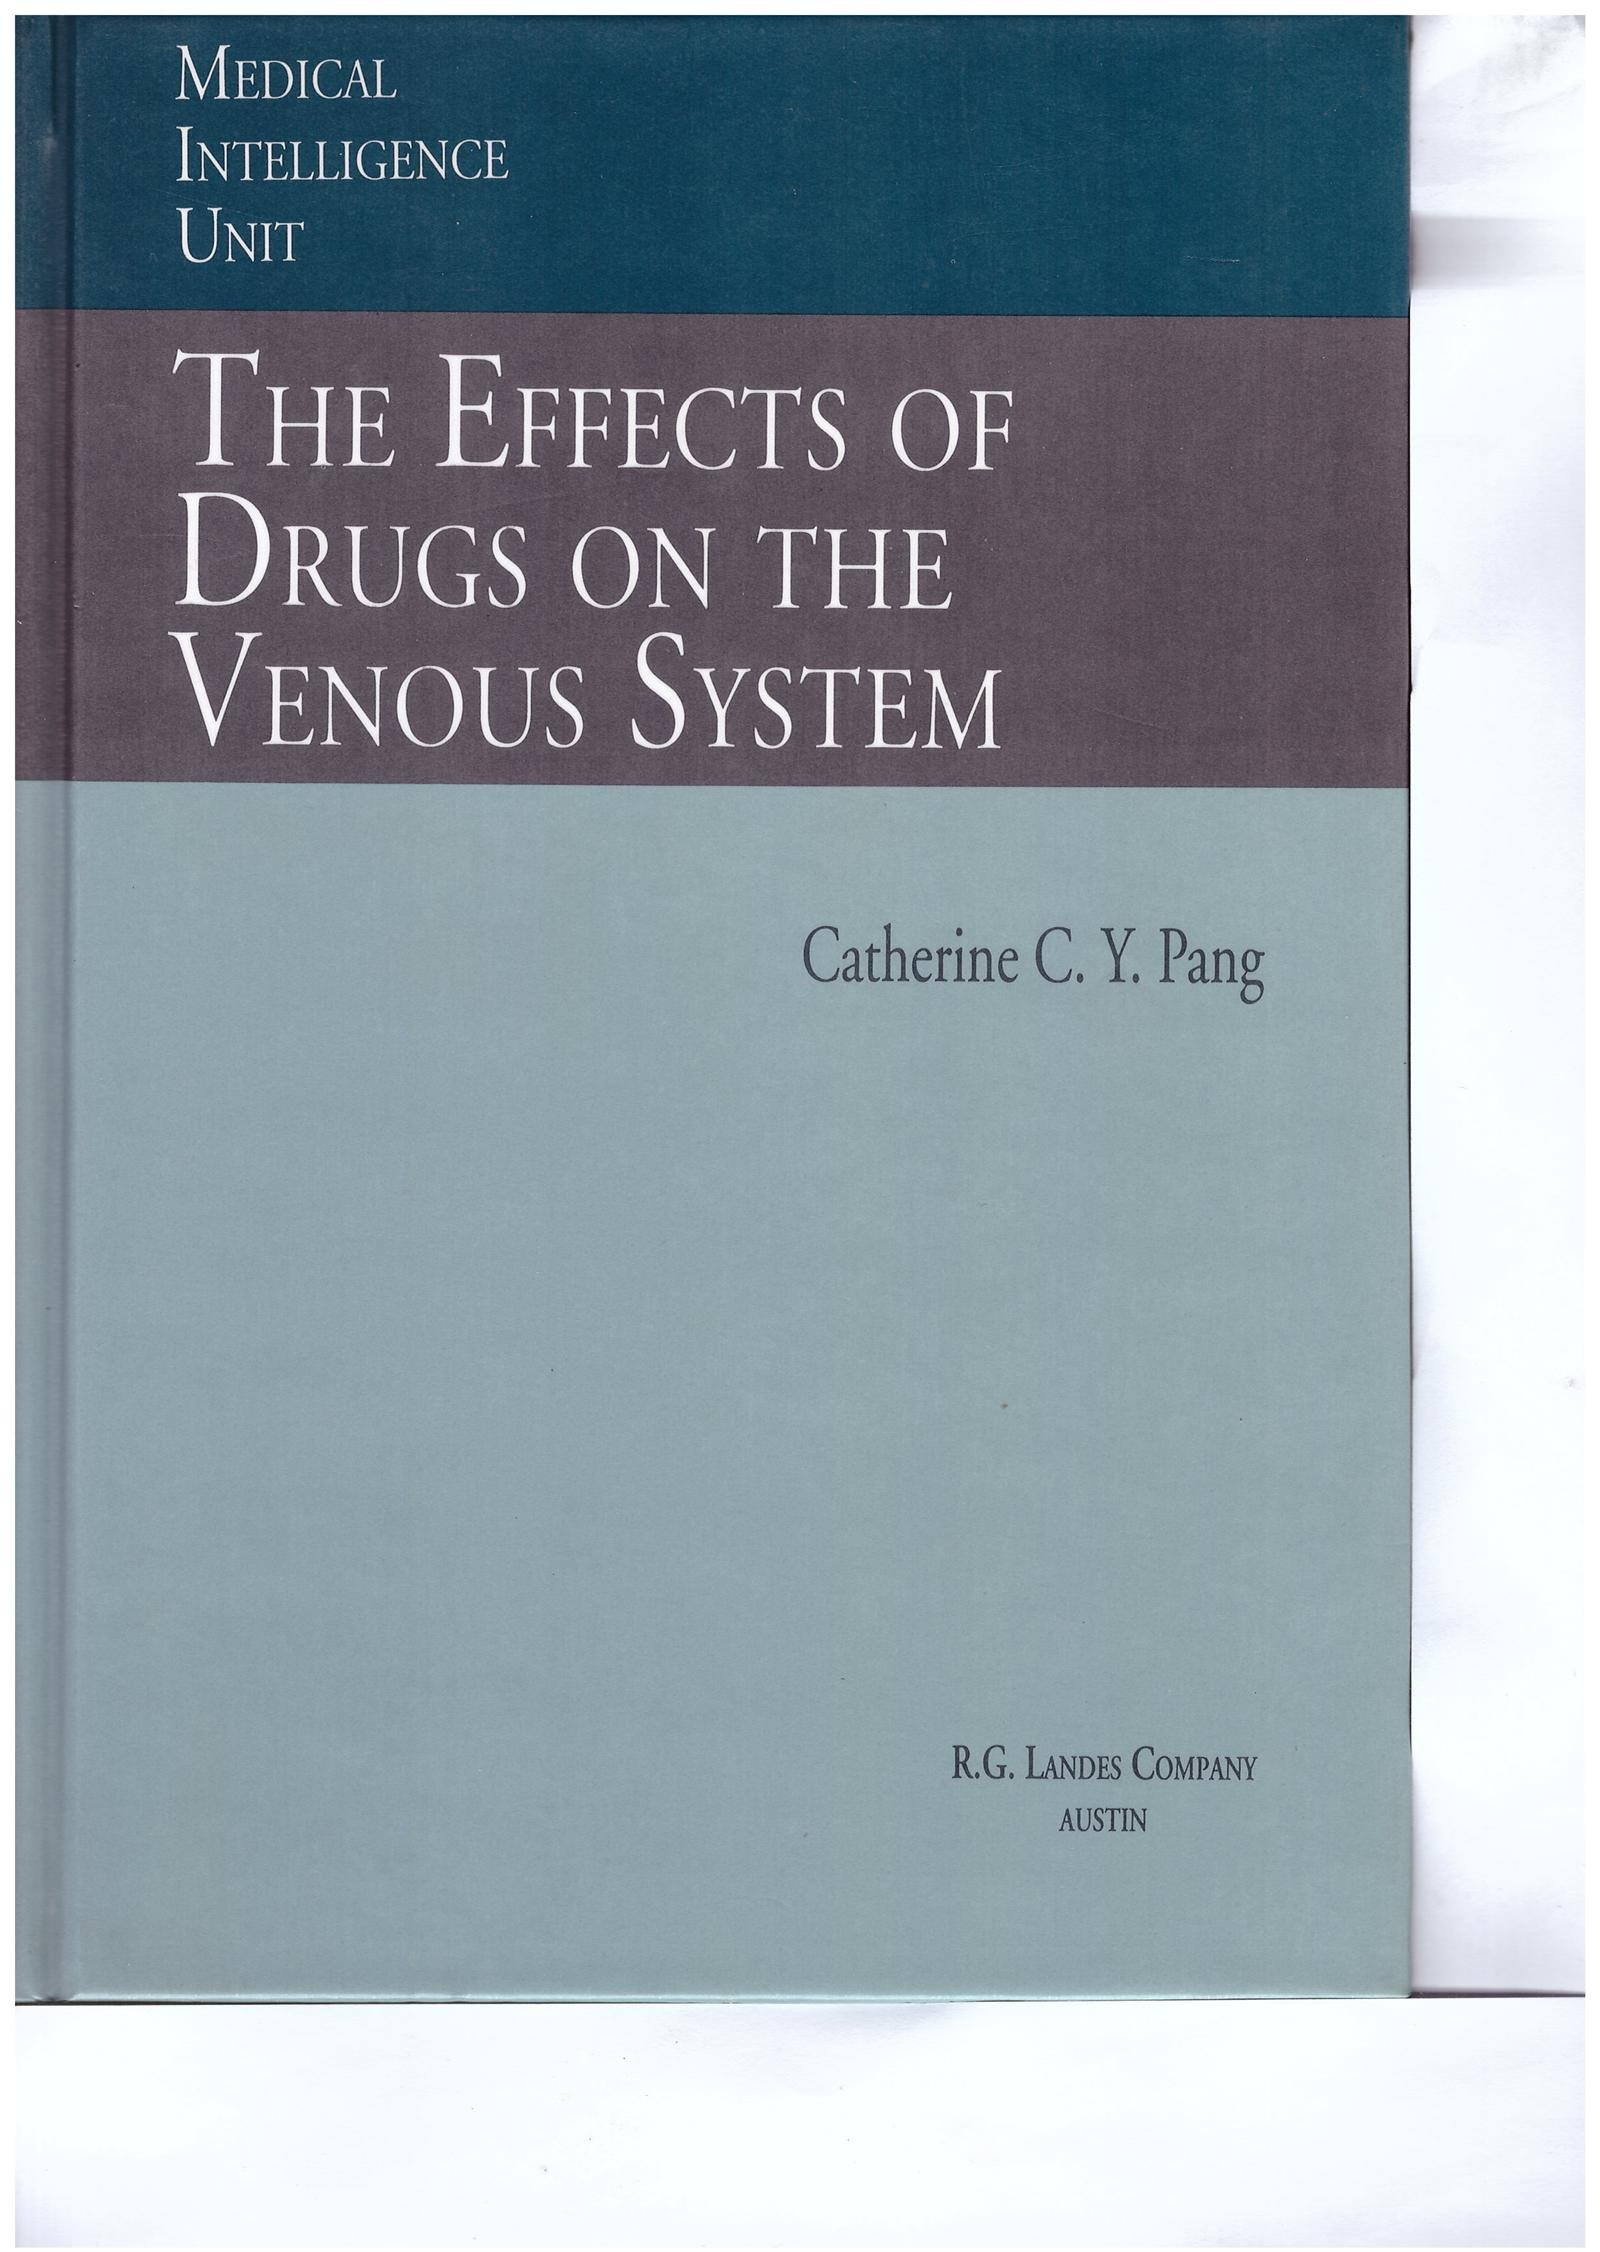 The Effects of Drugs in the Venous System (Medical Intelligence Unit)